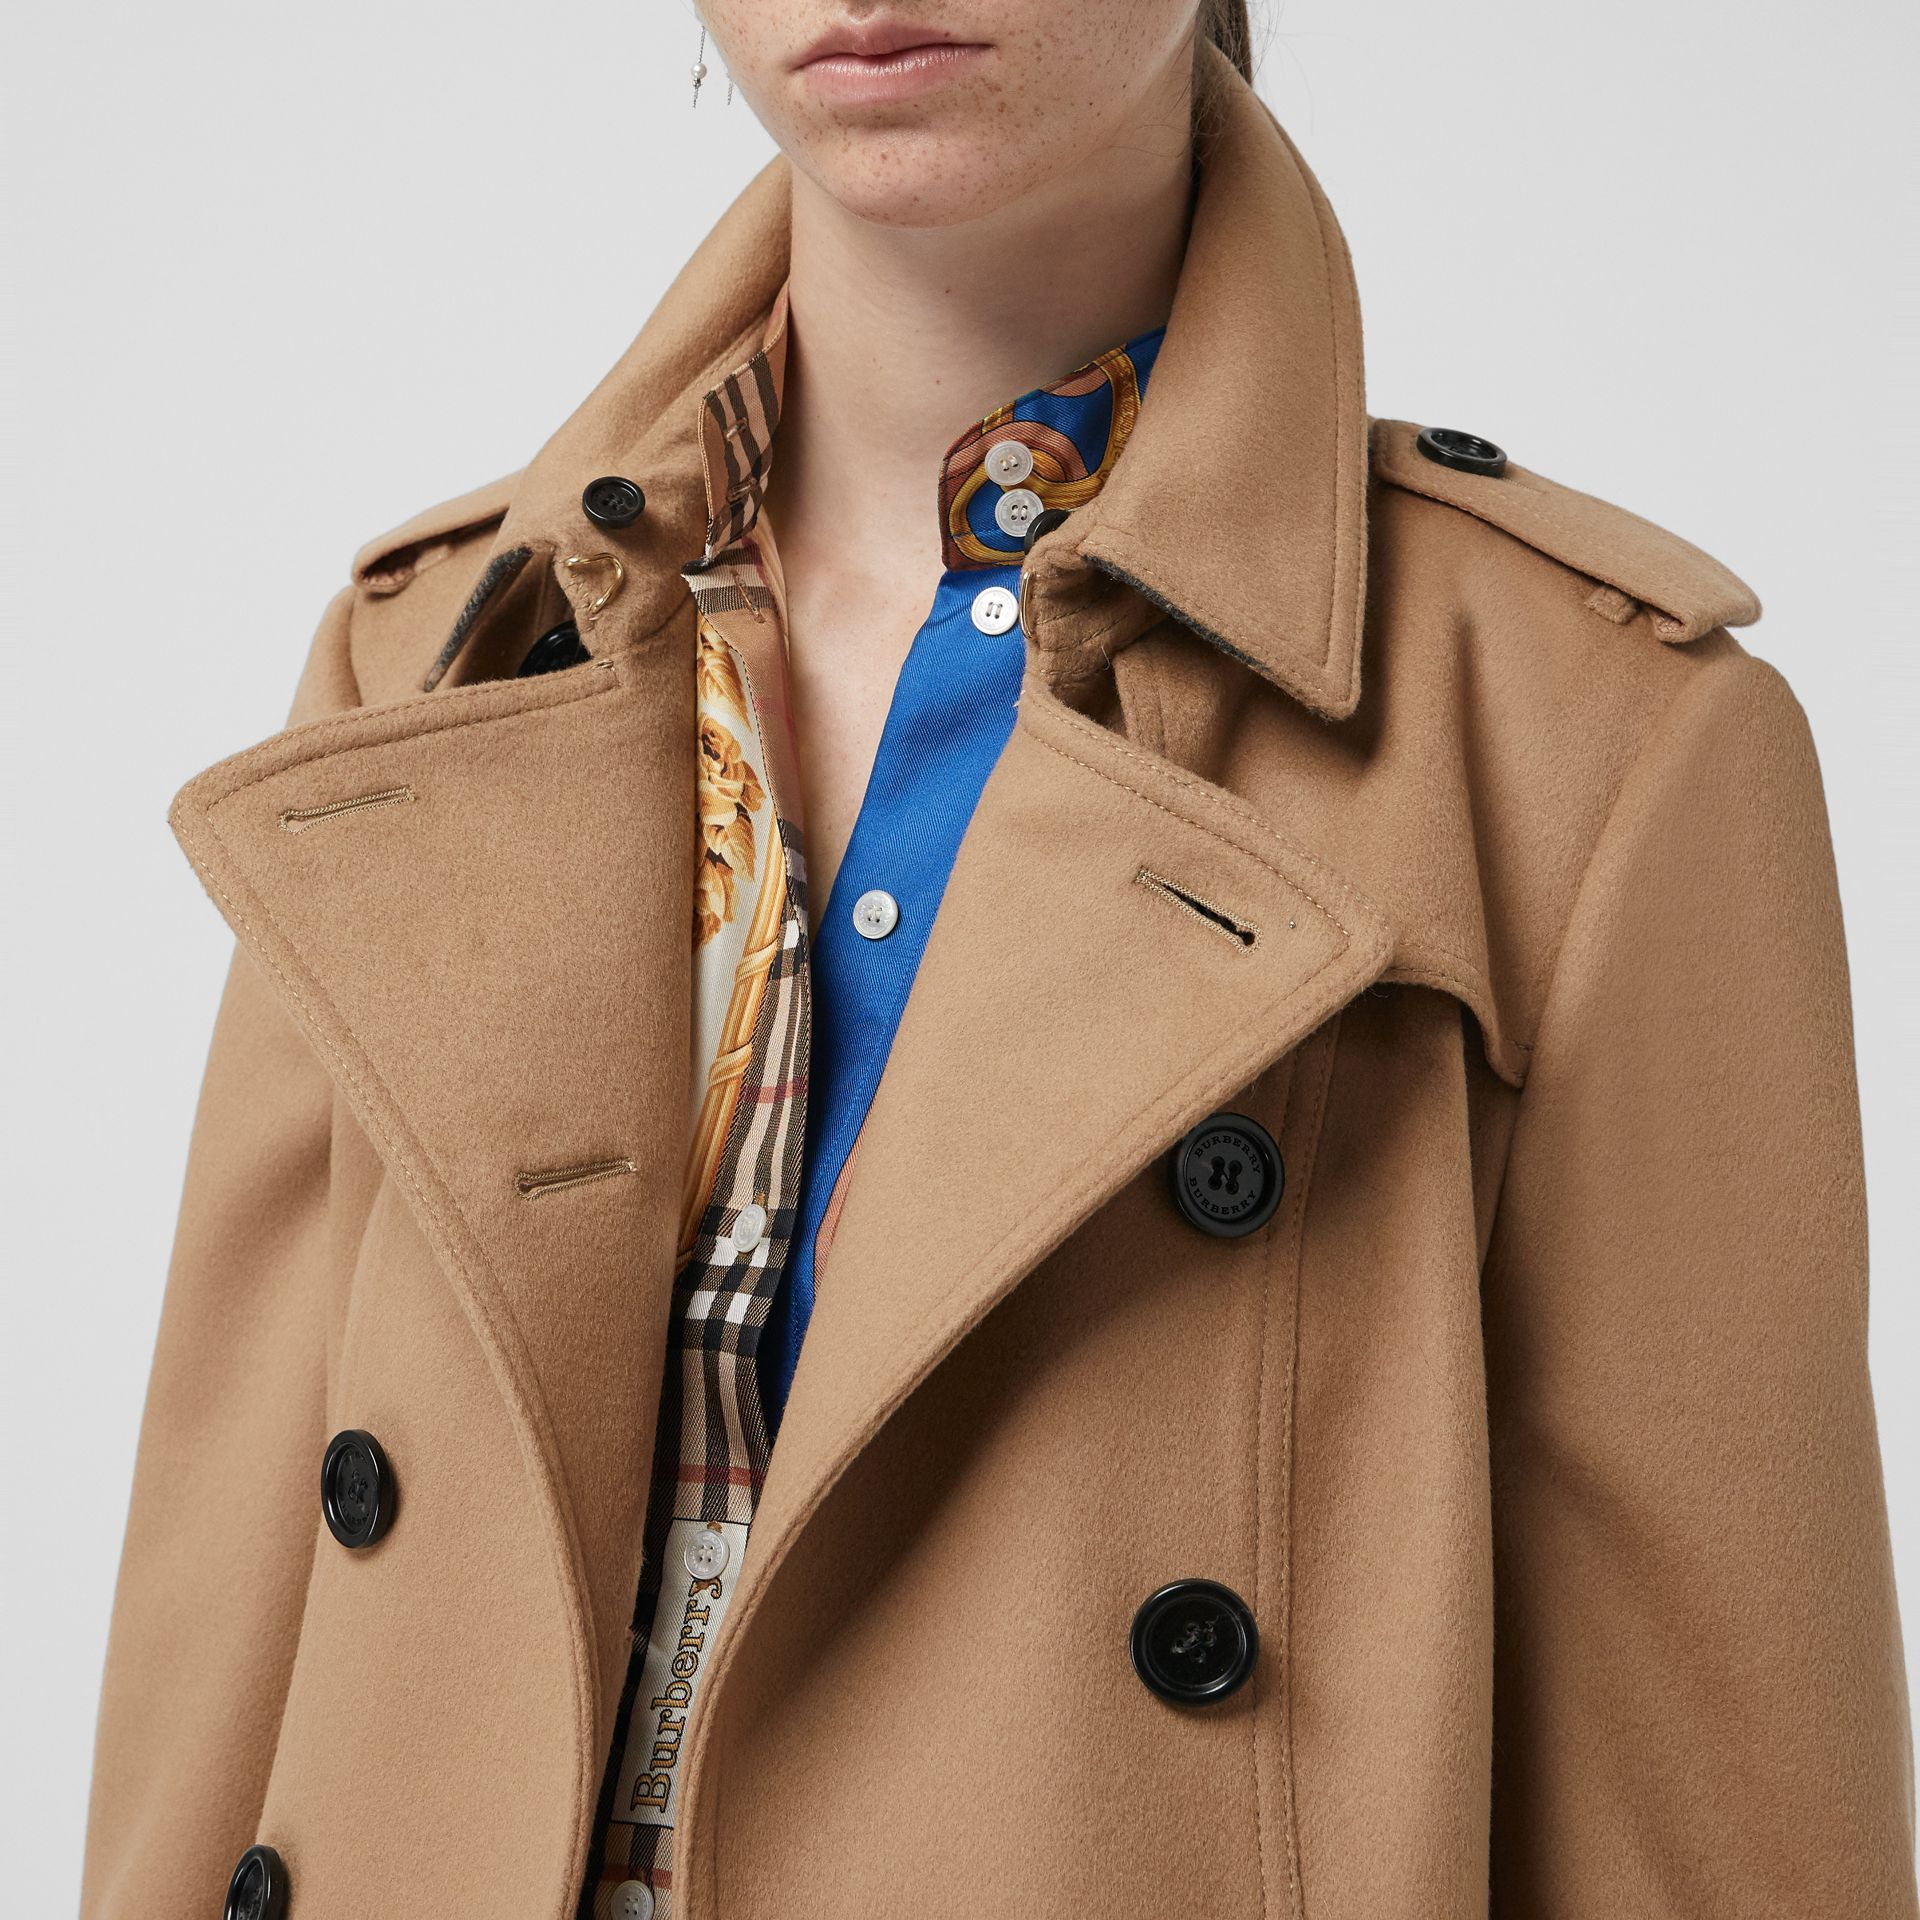 Wool Cashmere Trench Coat with Fur Collar in Camel - Women | Burberry United States - gallery image 1